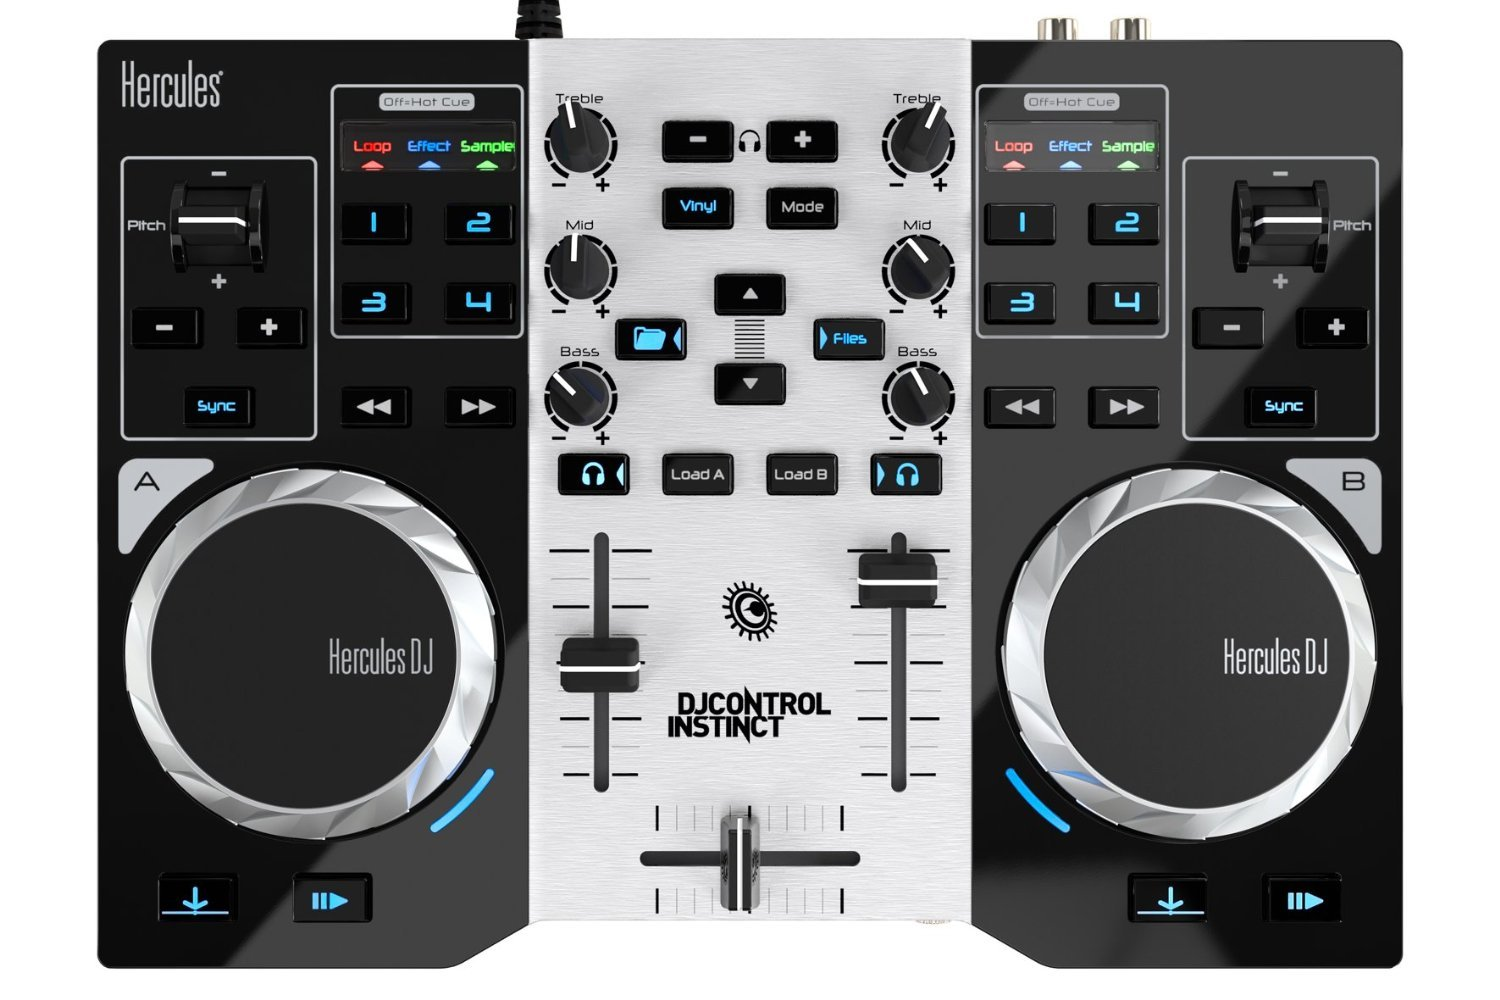 Hercules DJControl Instinct S series, ultra-mobile USB DJ Controller with Audio Outputs for use with your Headphones and your Speakers (4780833) 4780846